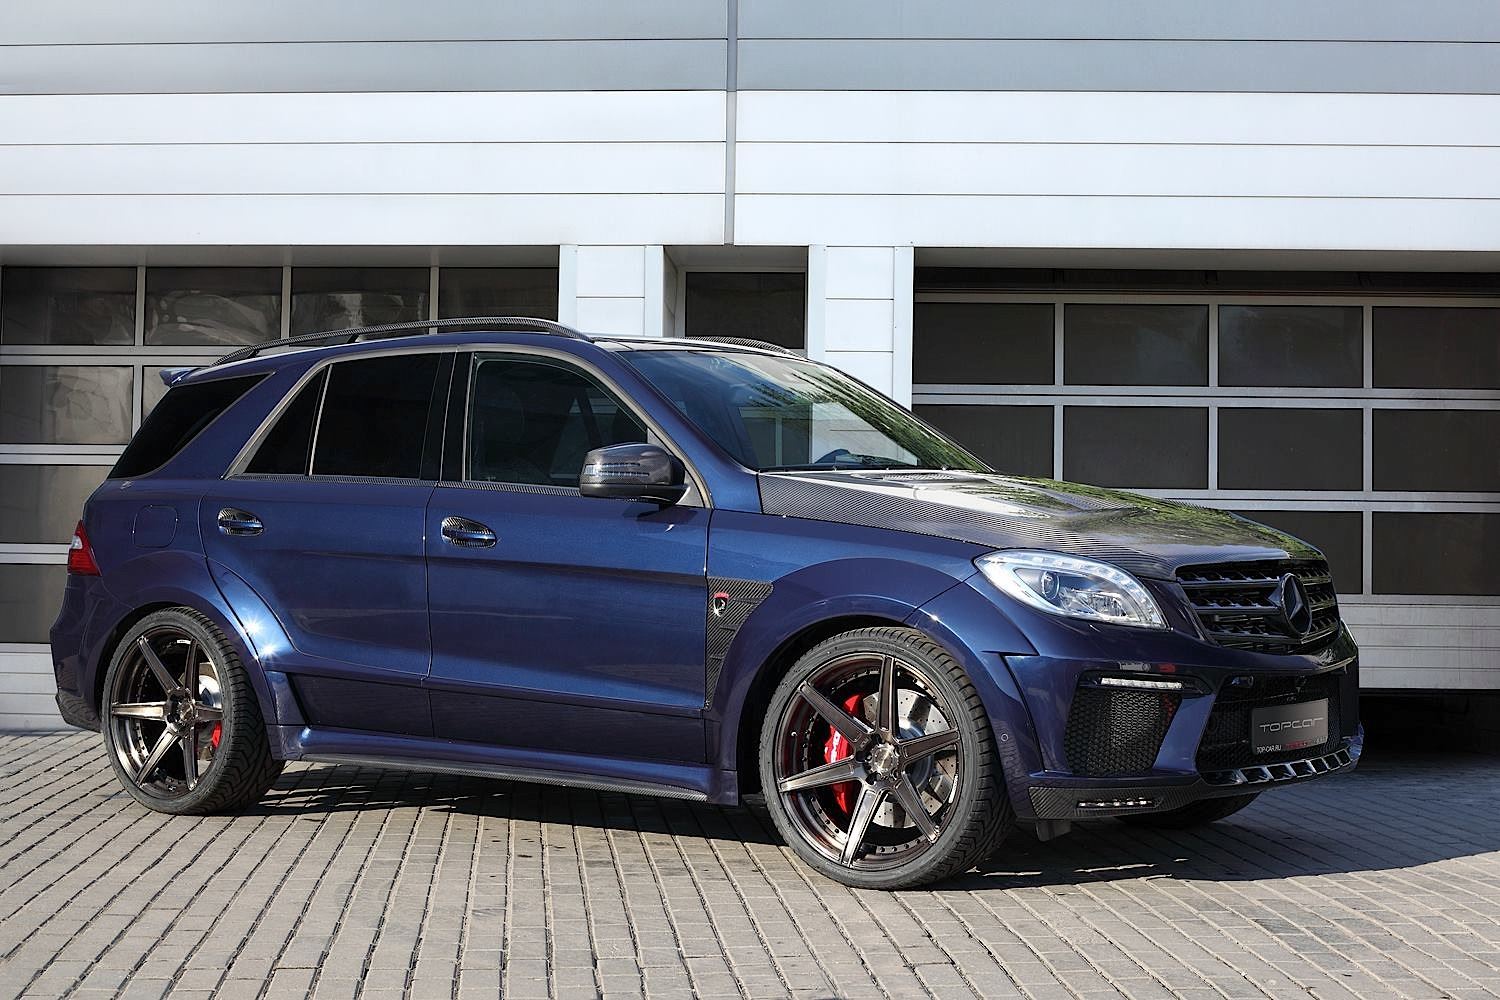 Mercedes Benz Ml 63 Amg Vs Bmw X6 M Doesn T End Well